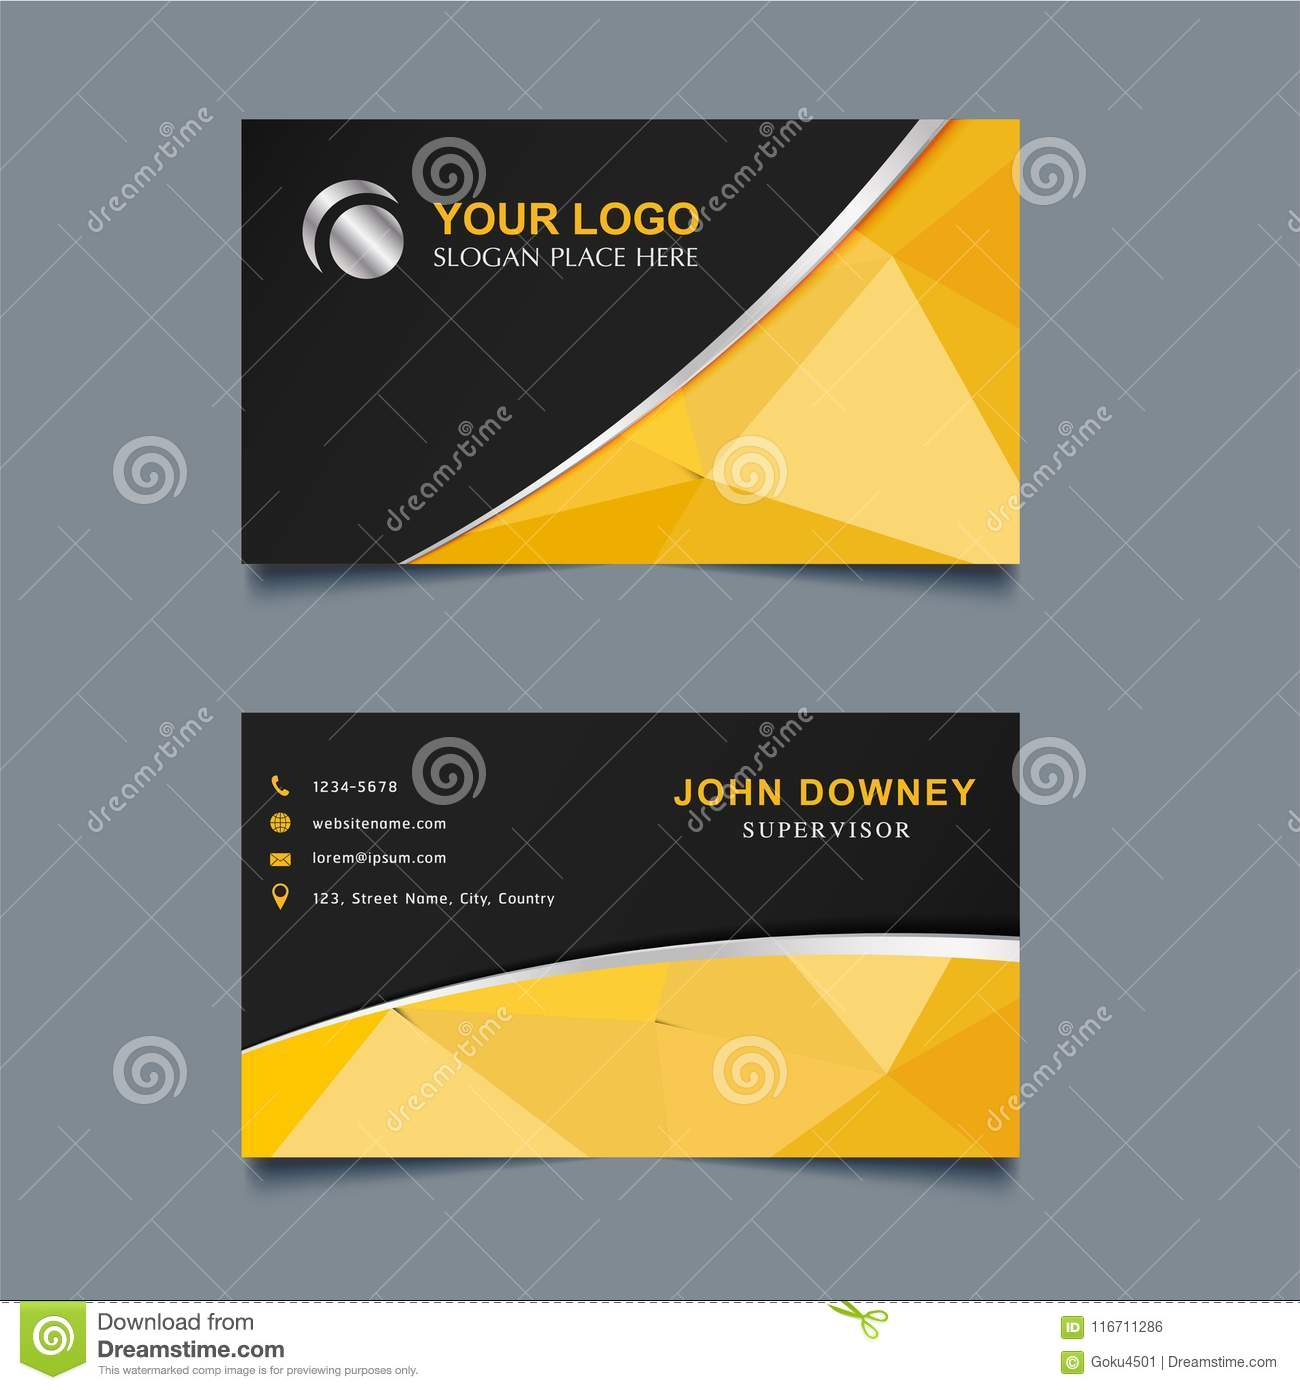 Modern Creative Business Card Template Double Sided. Stock ...